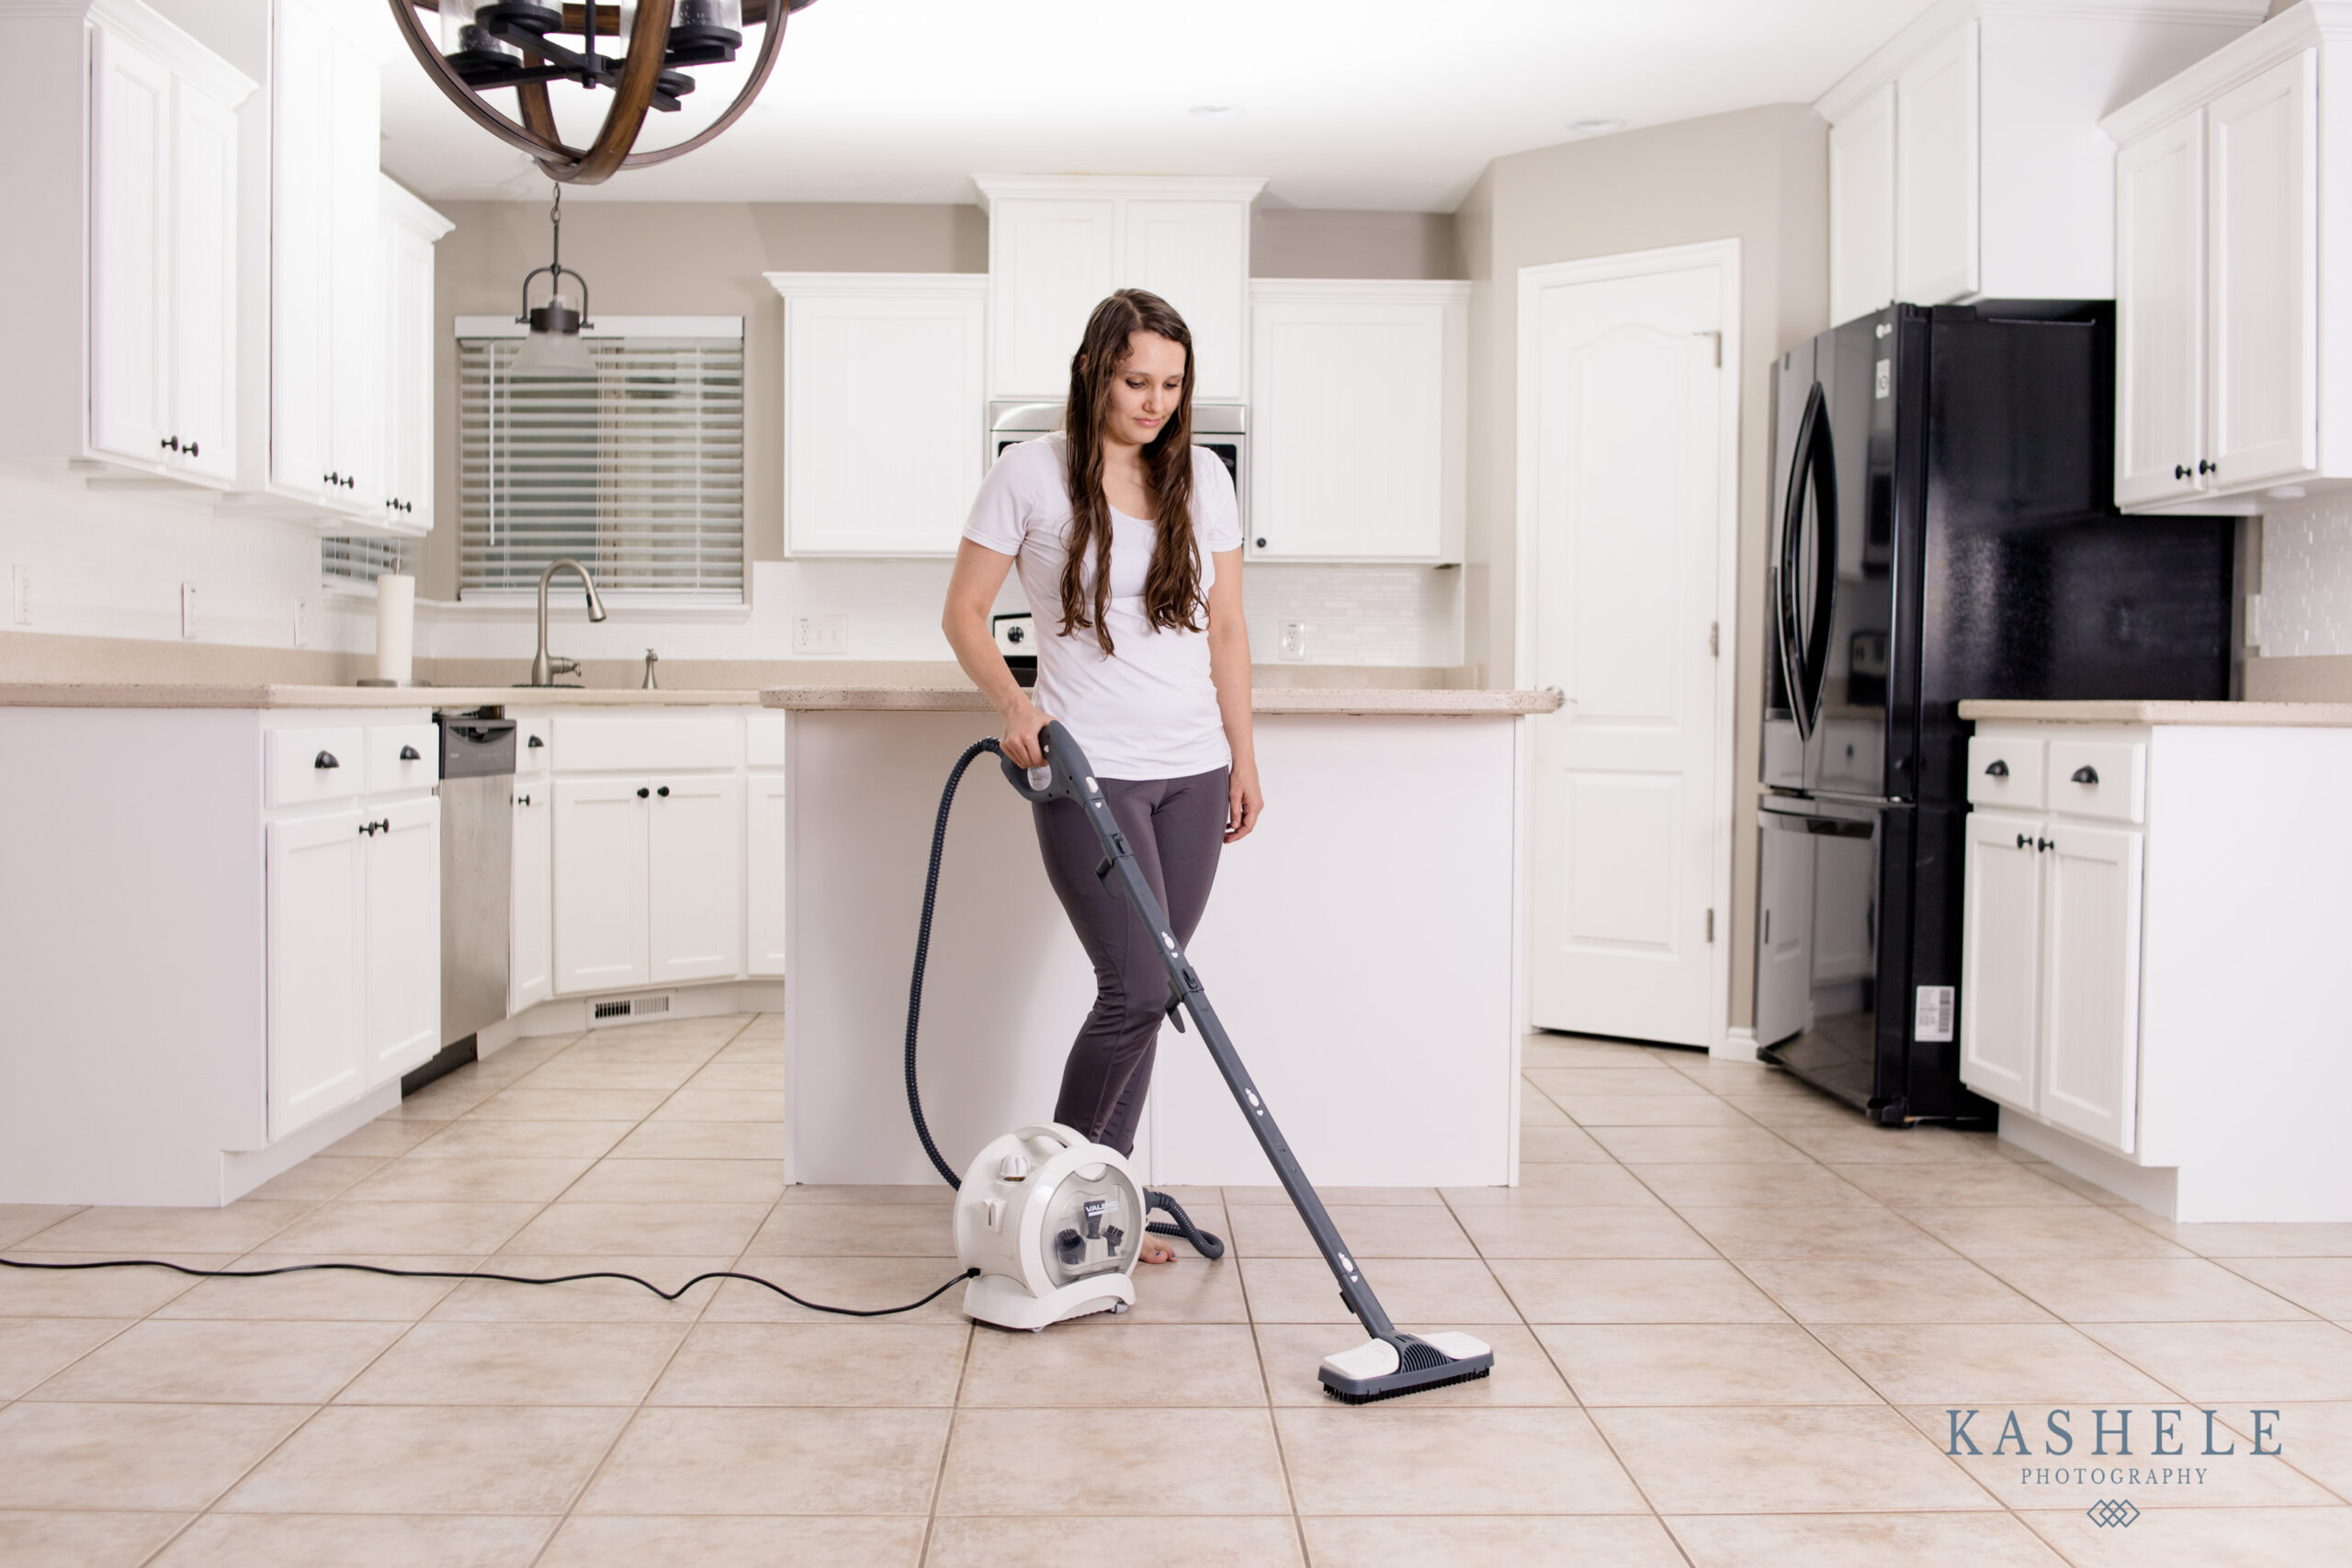 Lifestyle product photography image of floor steam cleaner